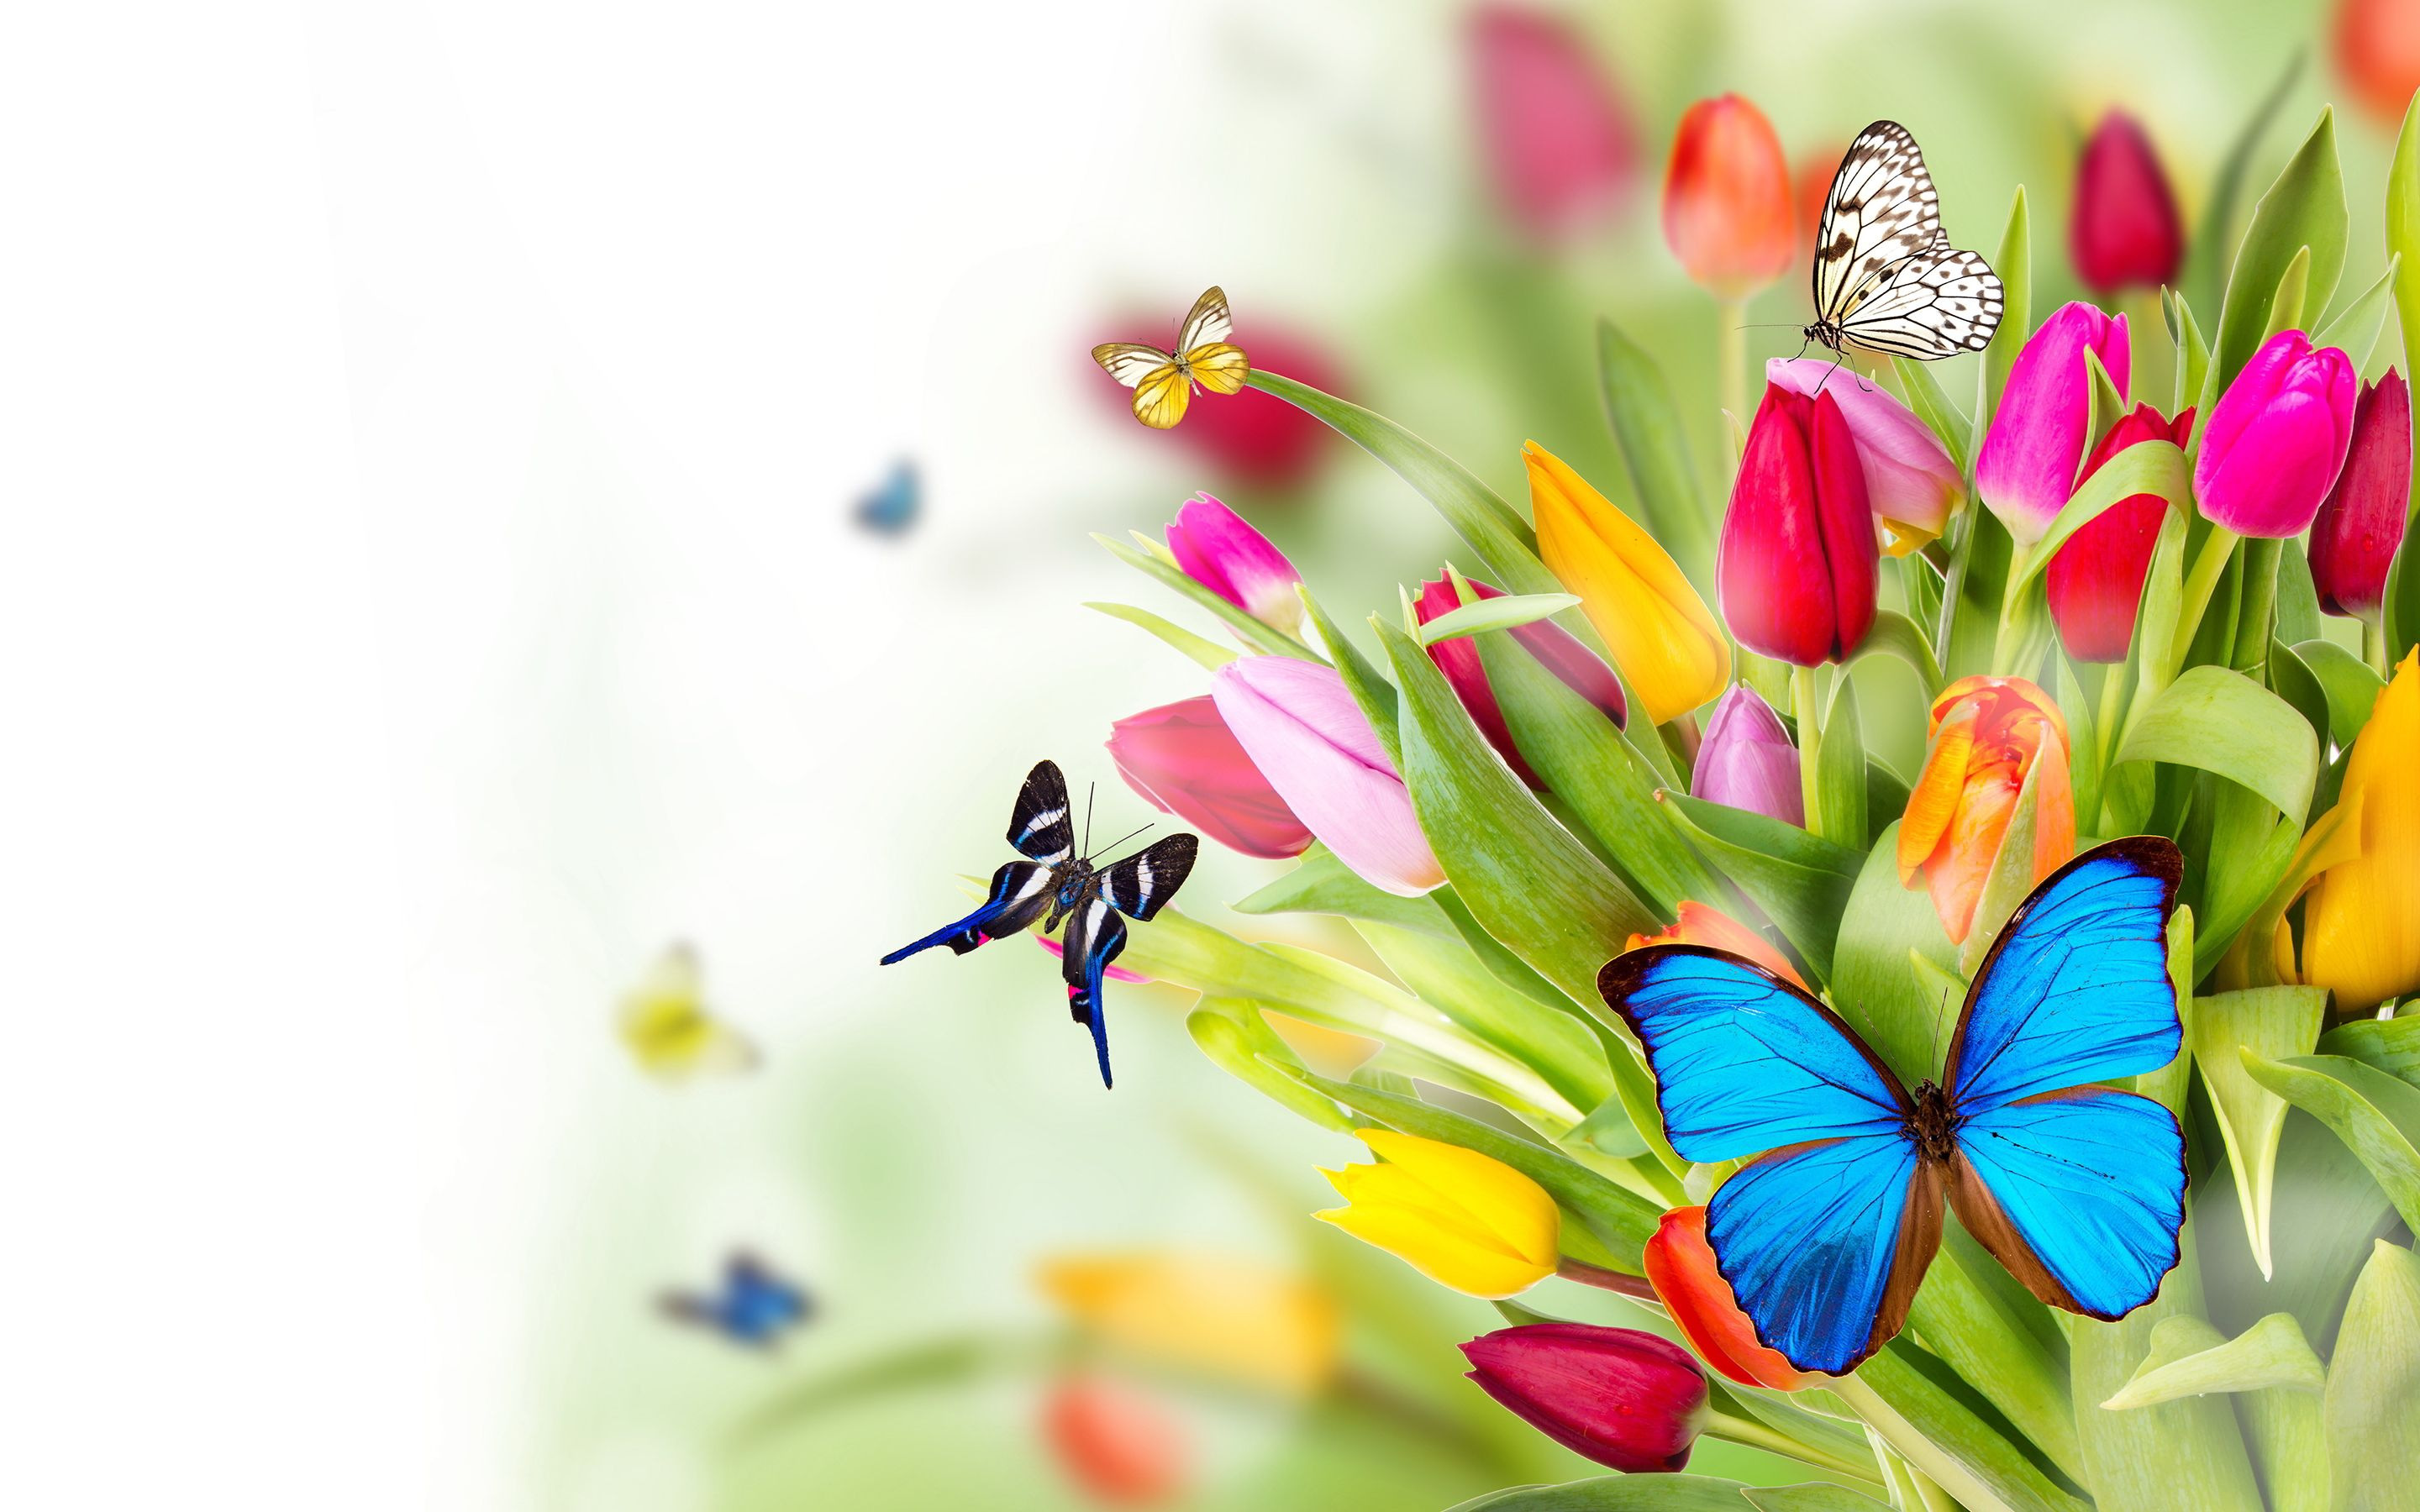 Butterfly Backgrounds Flowers butterflies Wallpapers Pictures 2880x1800